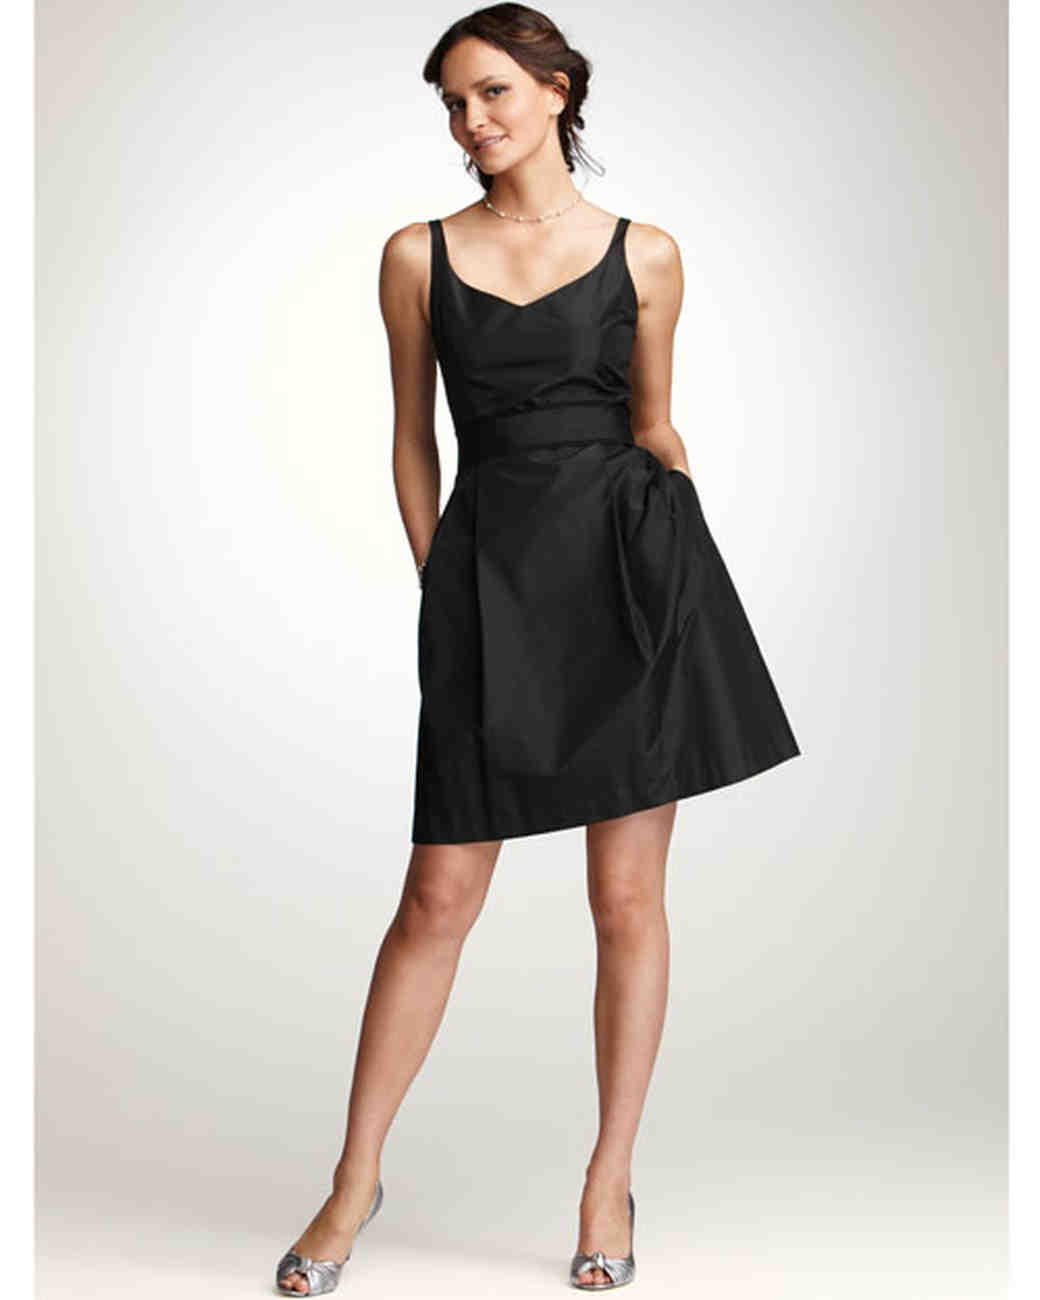 Ann taylor spring 2012 bridesmaid collection martha stewart weddings short black bridesmaid dress ombrellifo Images